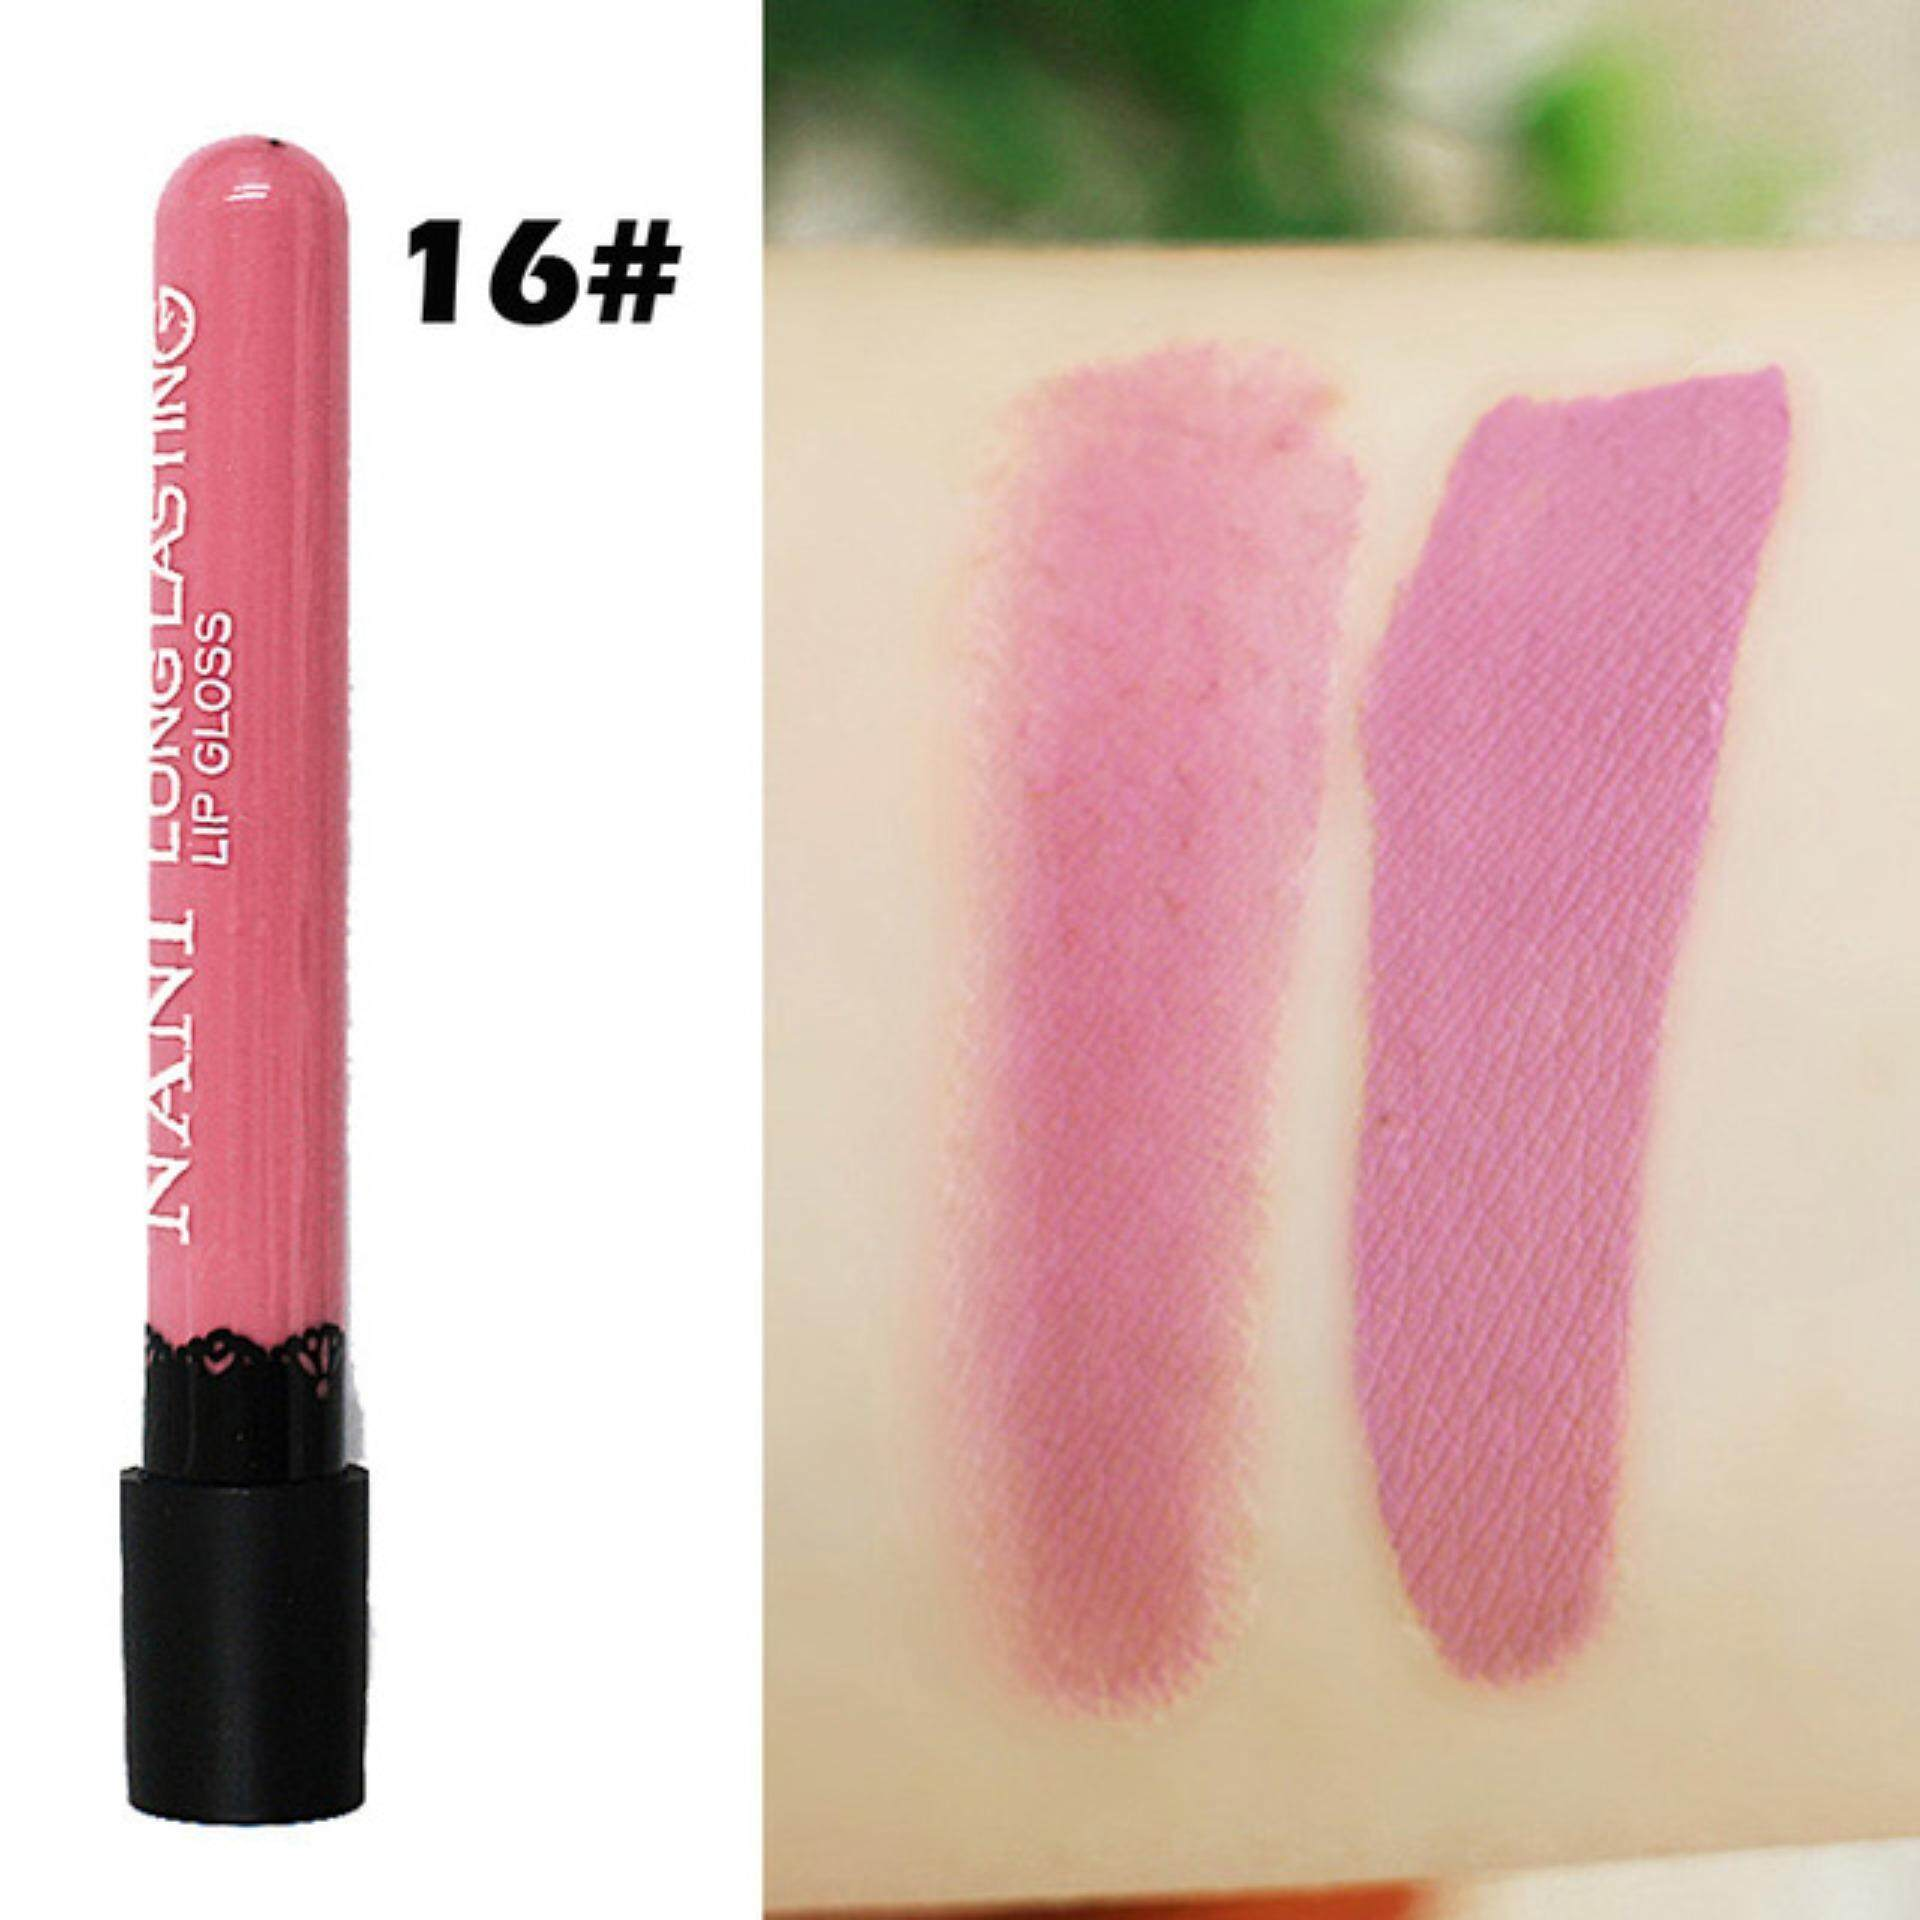 NANI Long Lasting Lip Gloss 3.8g